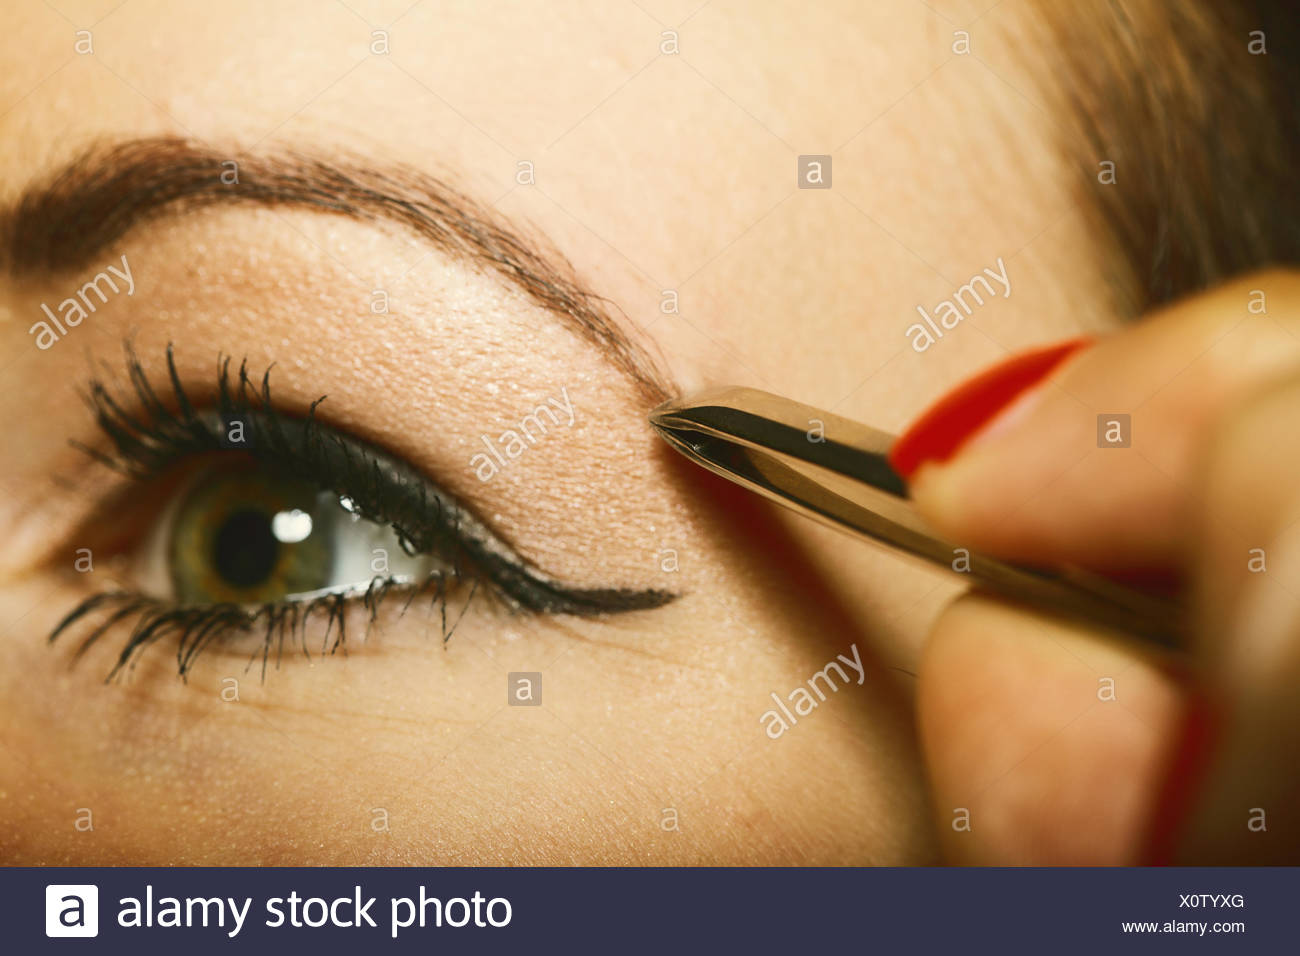 part of face woman plucking eyebrows - Stock Image